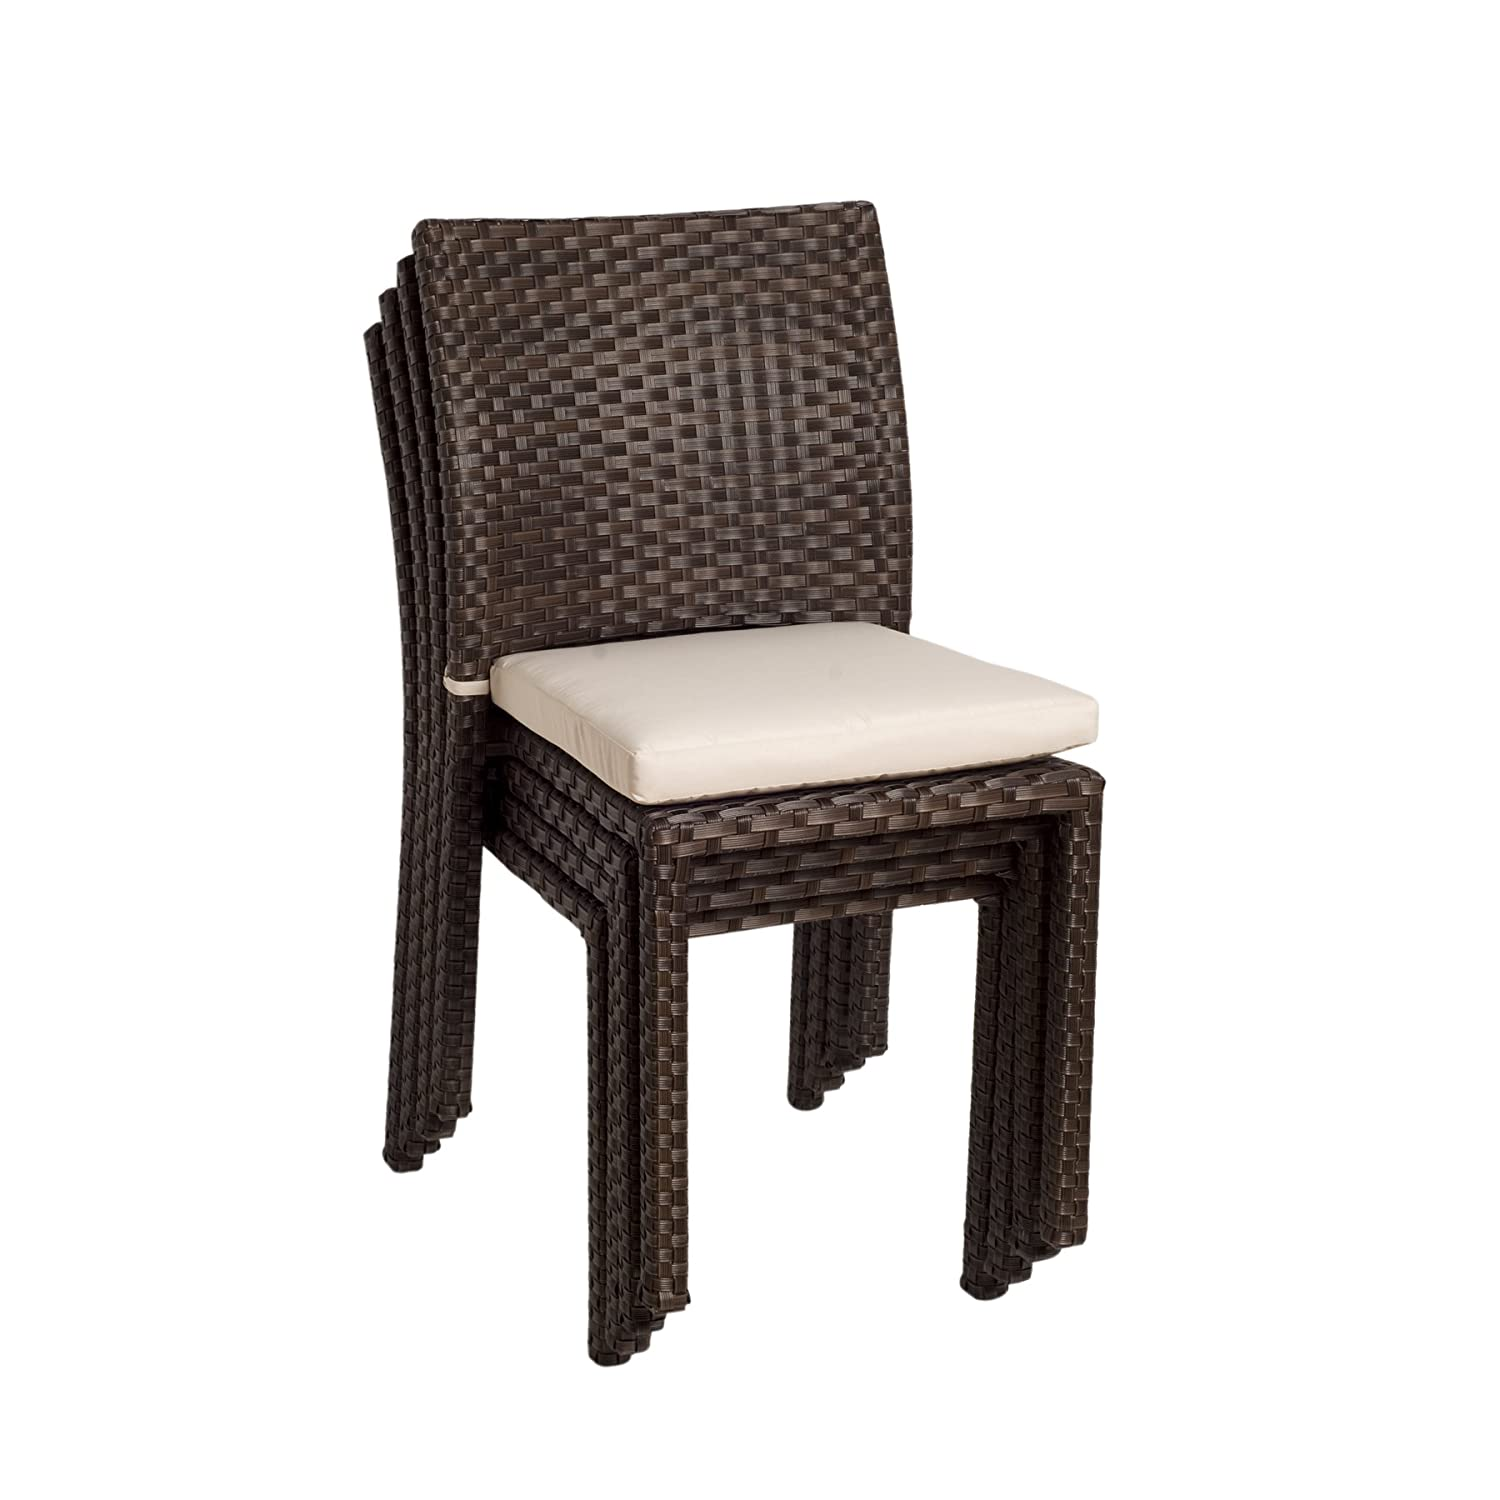 Amazon.com: Atlantic Liberty Stackable Chairs, 4 Pack: Garden U0026 Outdoor